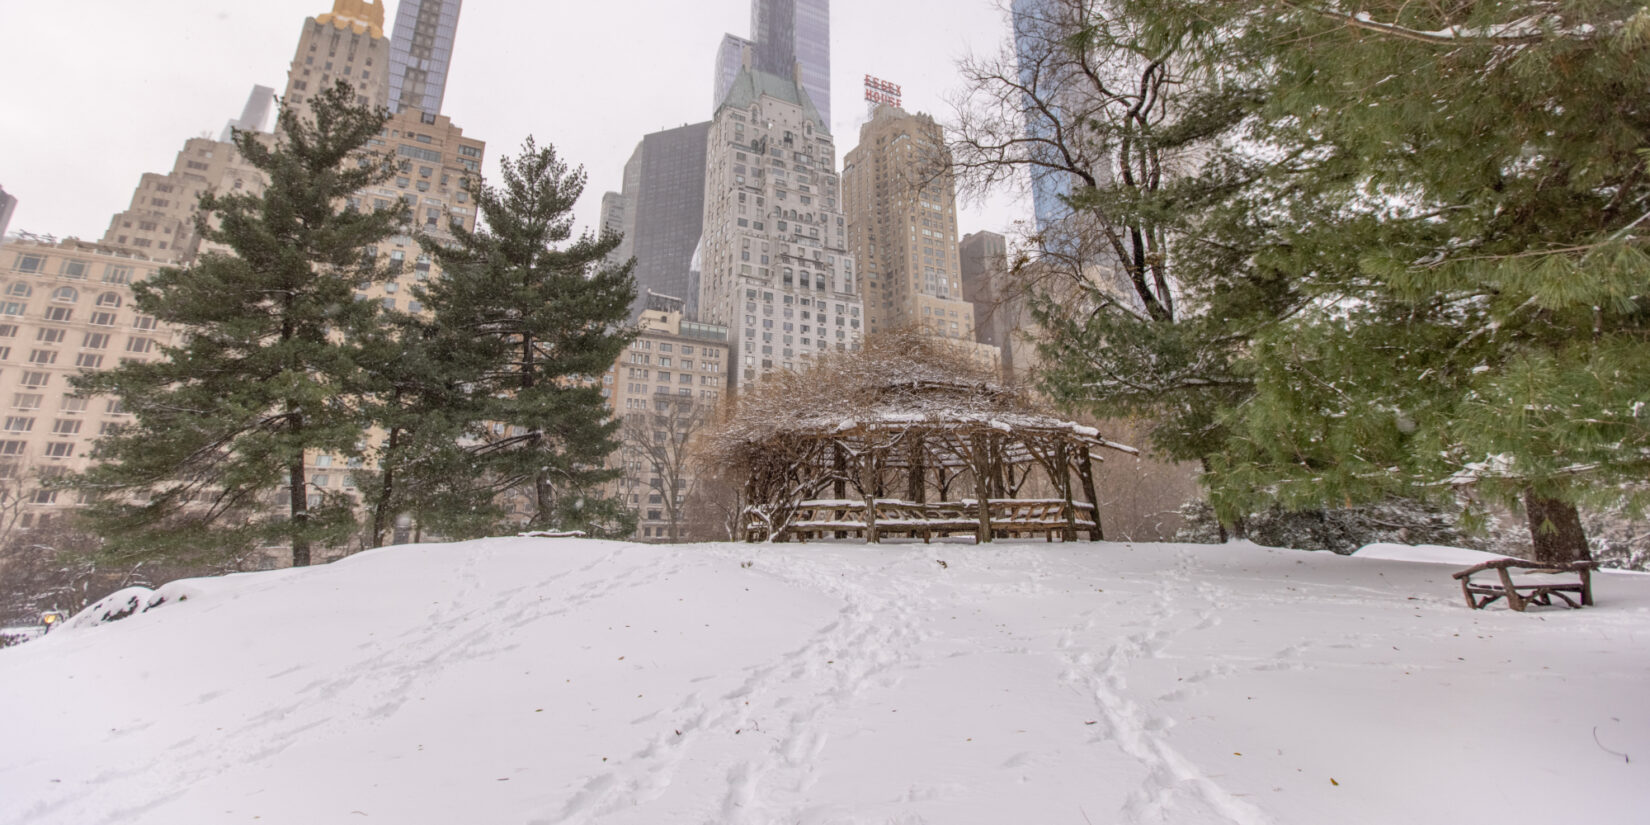 The rustic structure, Cop Cot, under a layer of snow